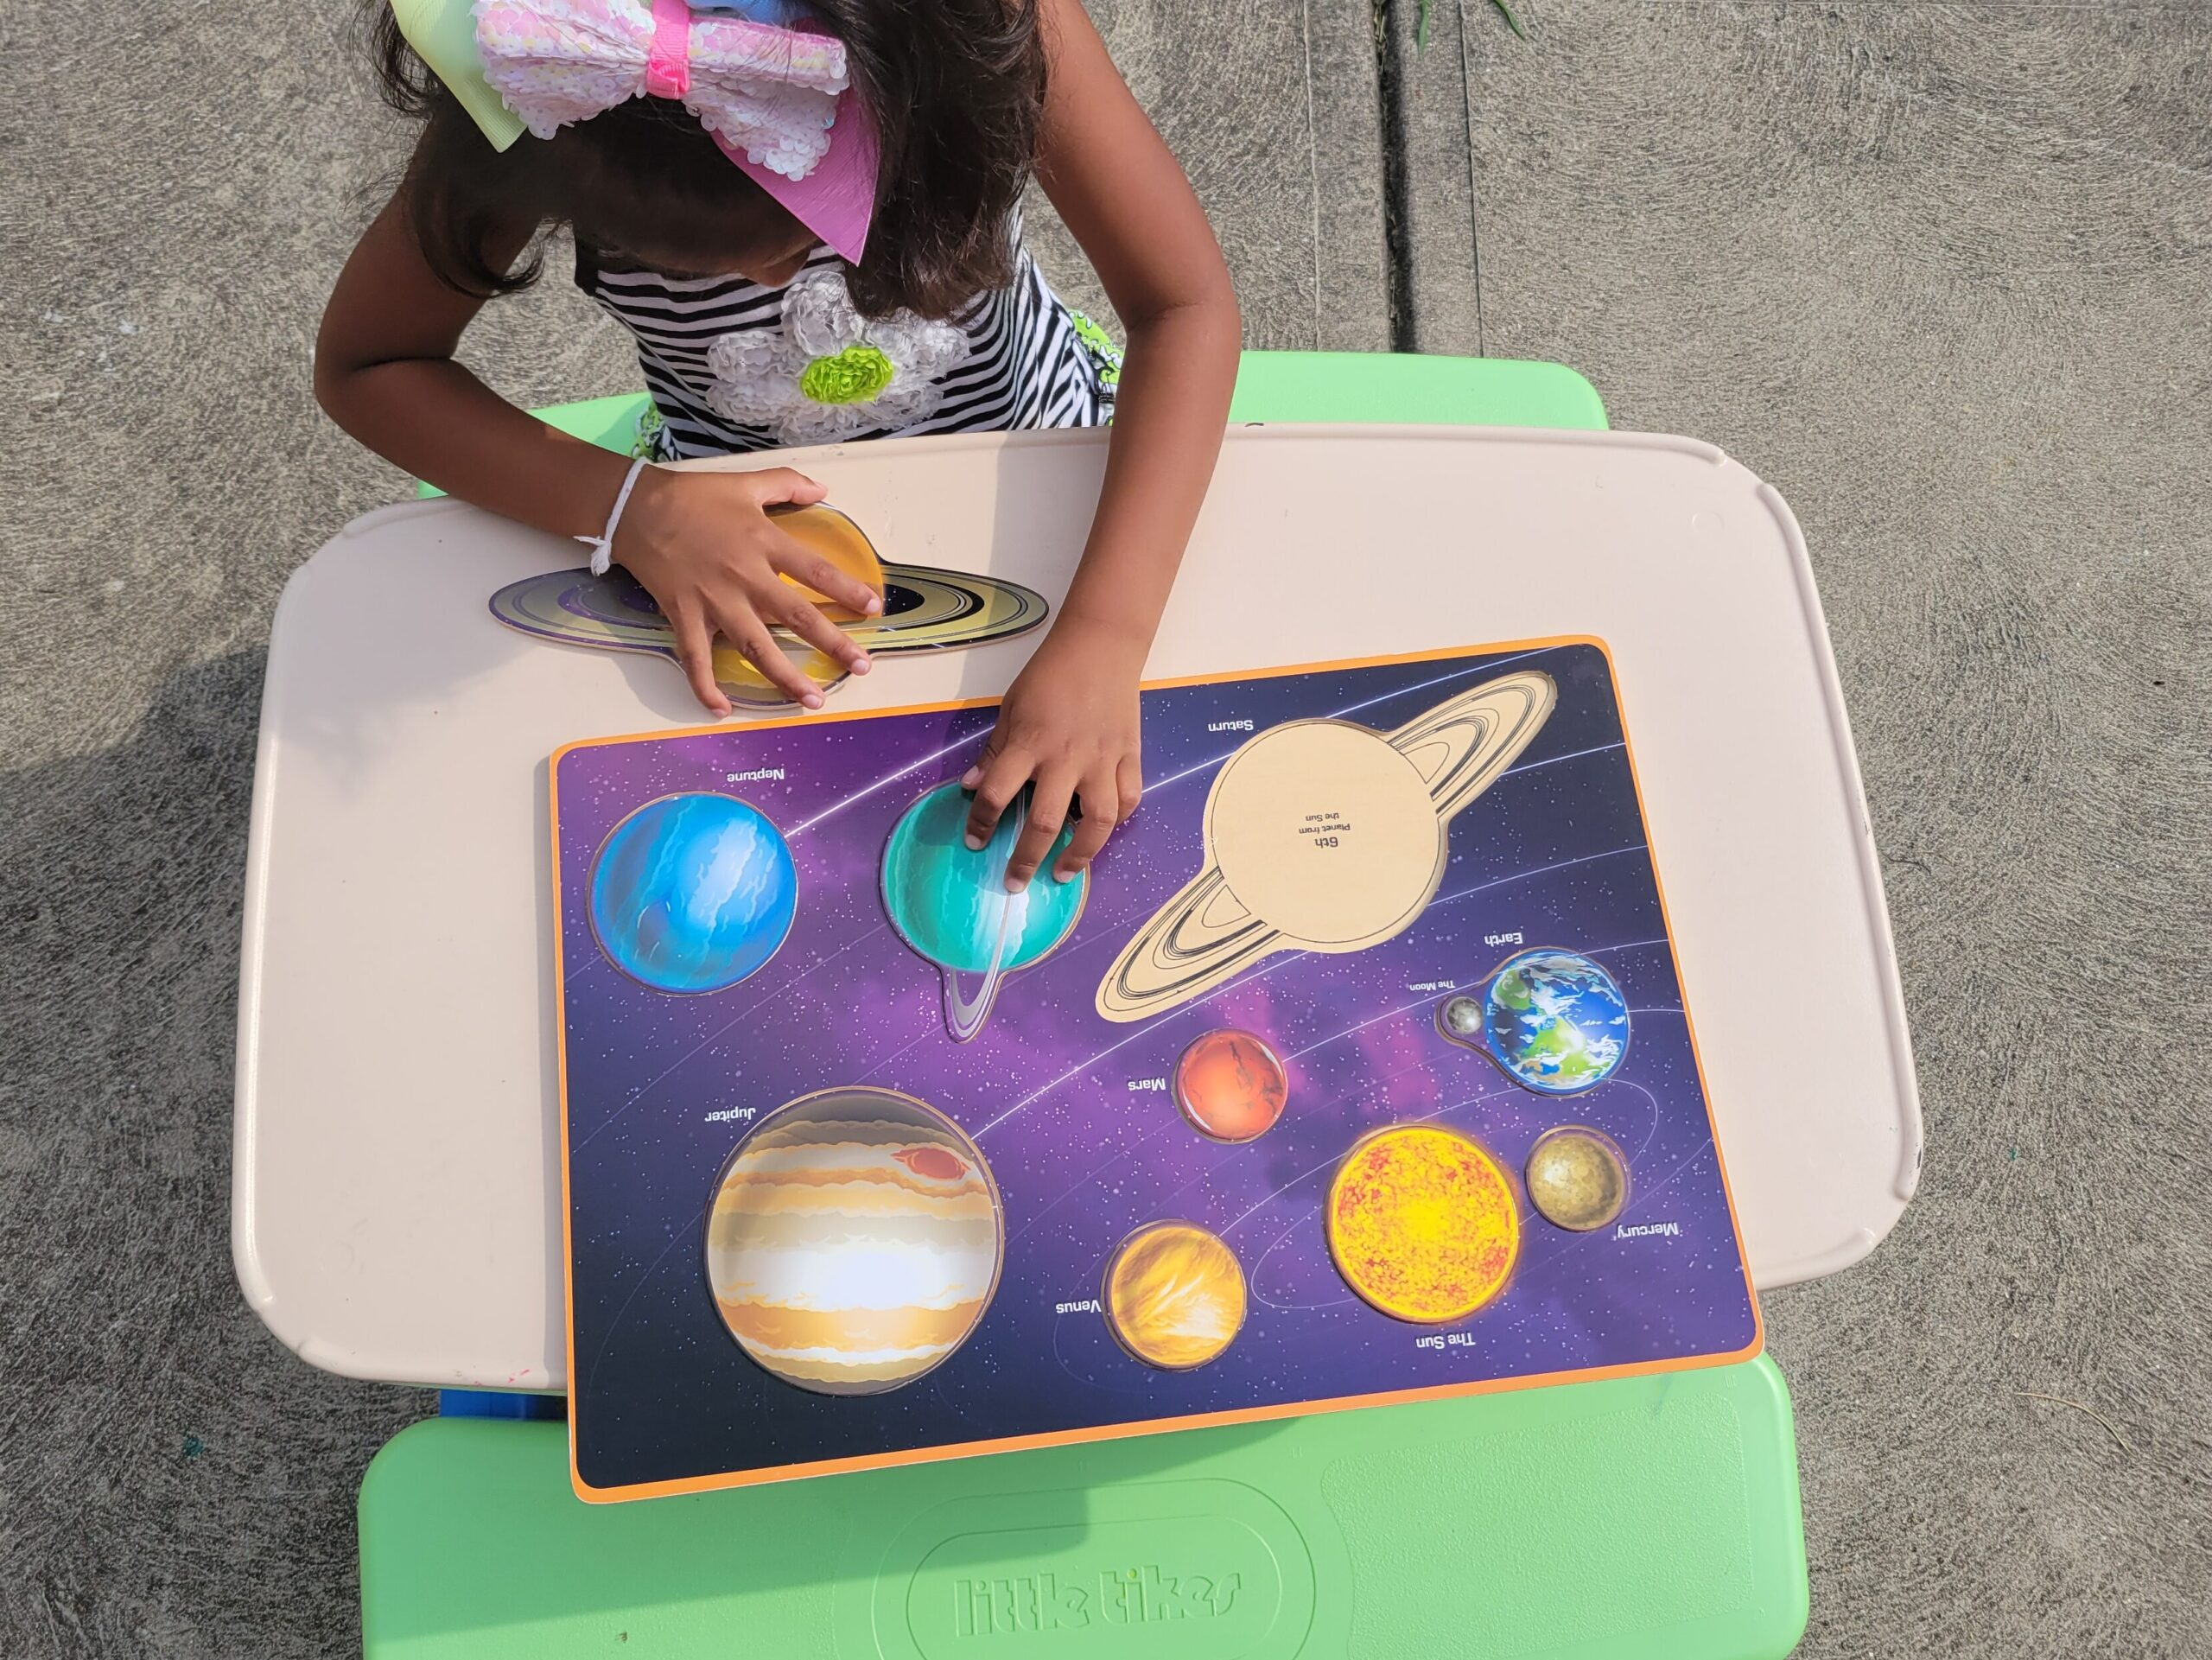 Our World Puzzle Set by SimplyFun encourages learning through play and supports back-to-school success